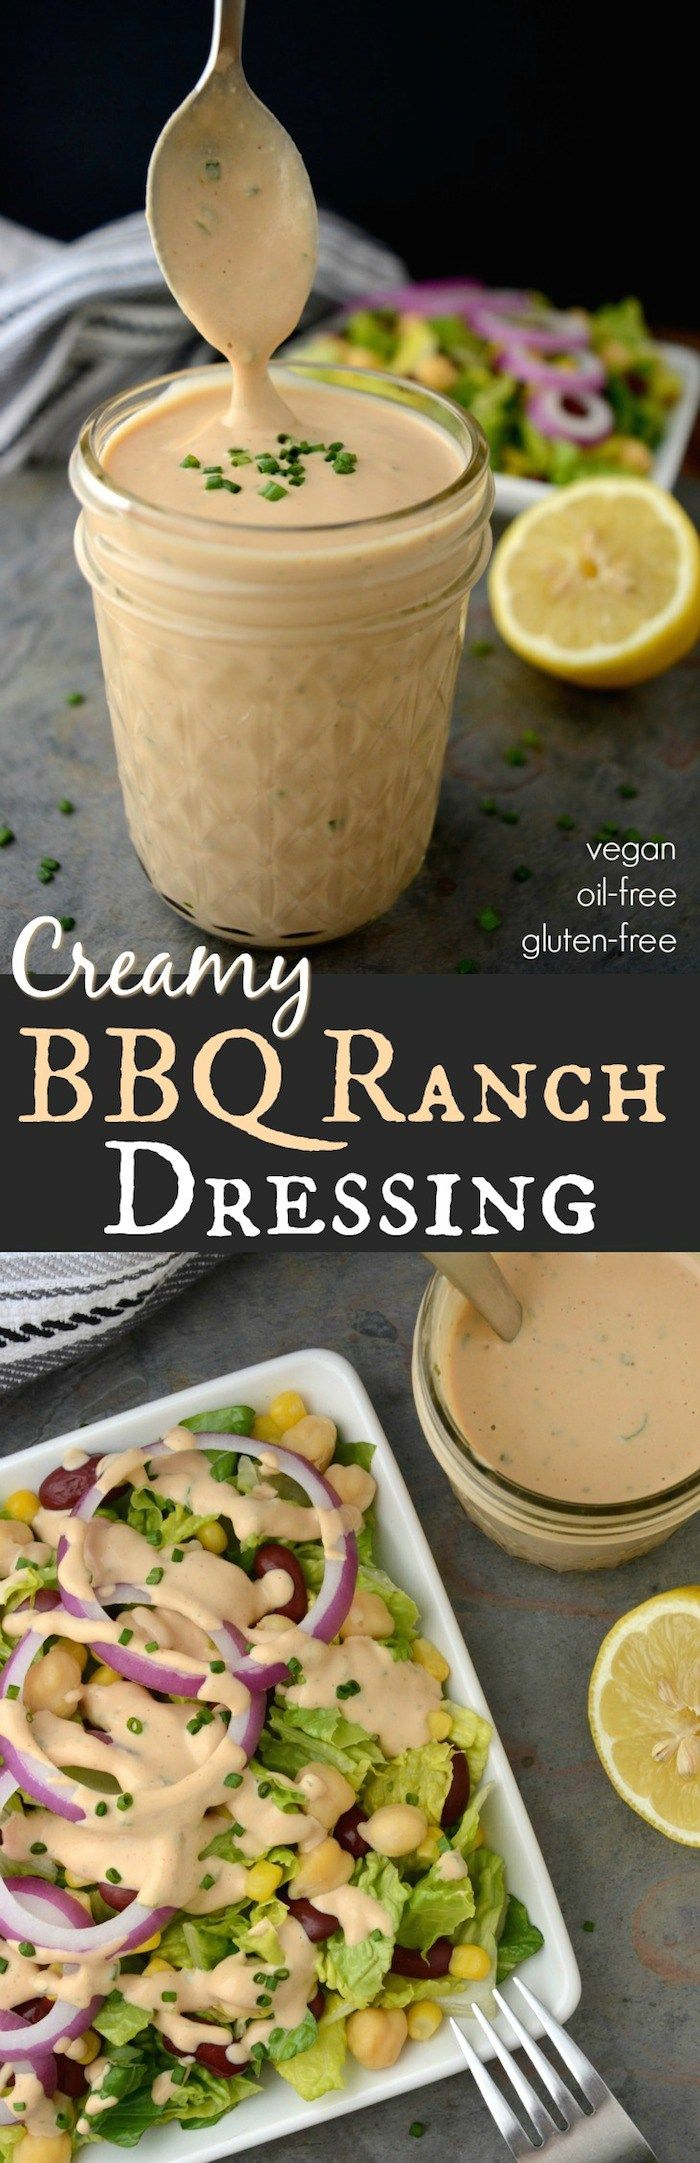 Creamy BBQ Ranch Dressing –A creamy dreamy dressing worth slathering on…